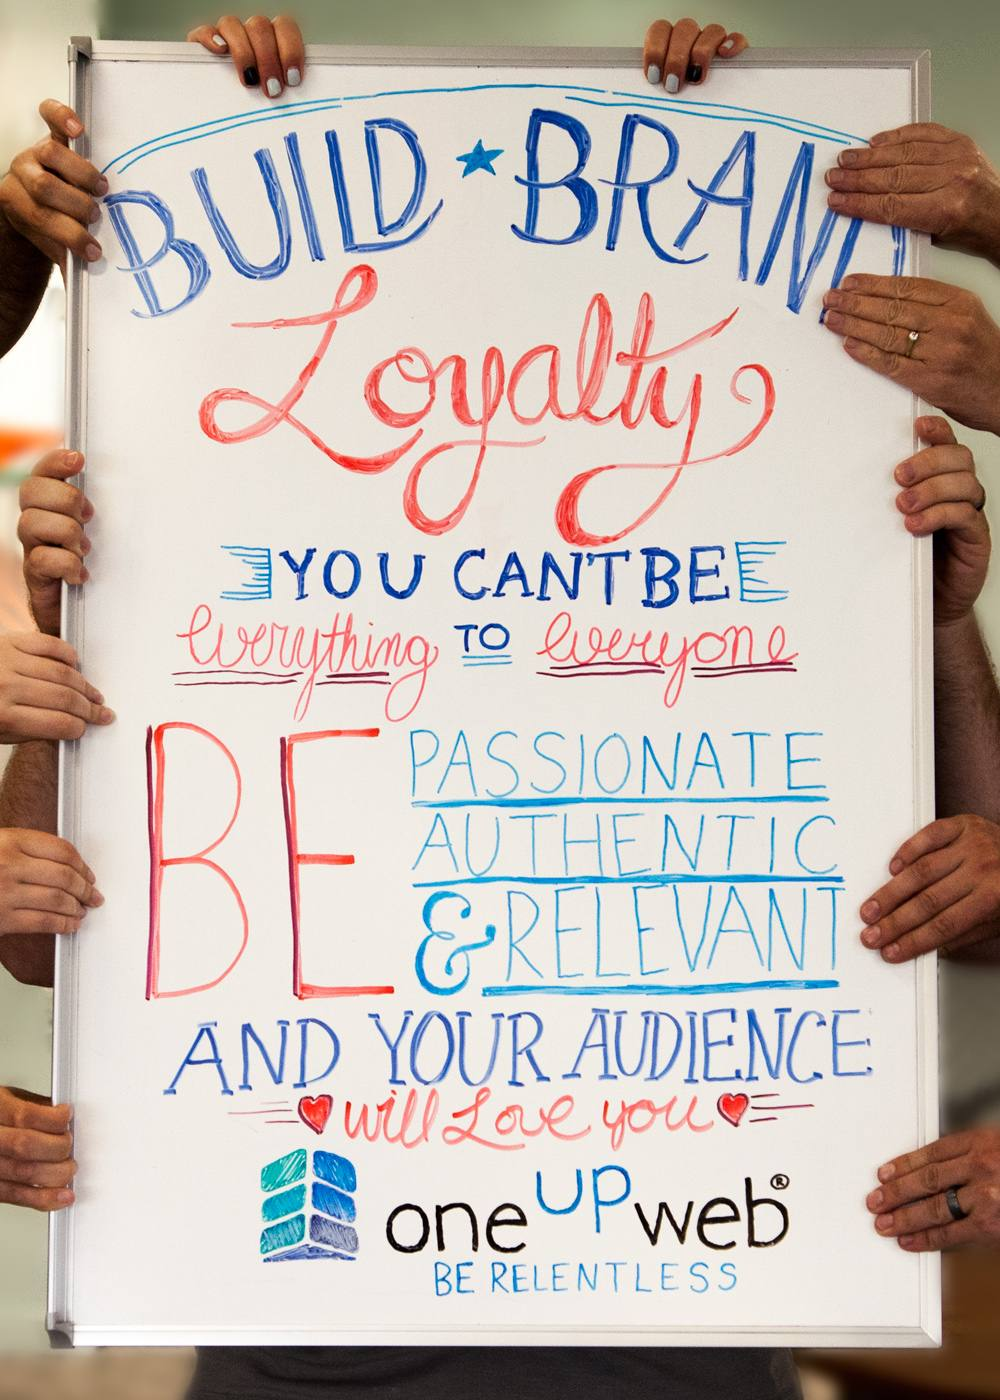 Tip of the Week: Build Brand Loyalty. You cant be everything to everyone